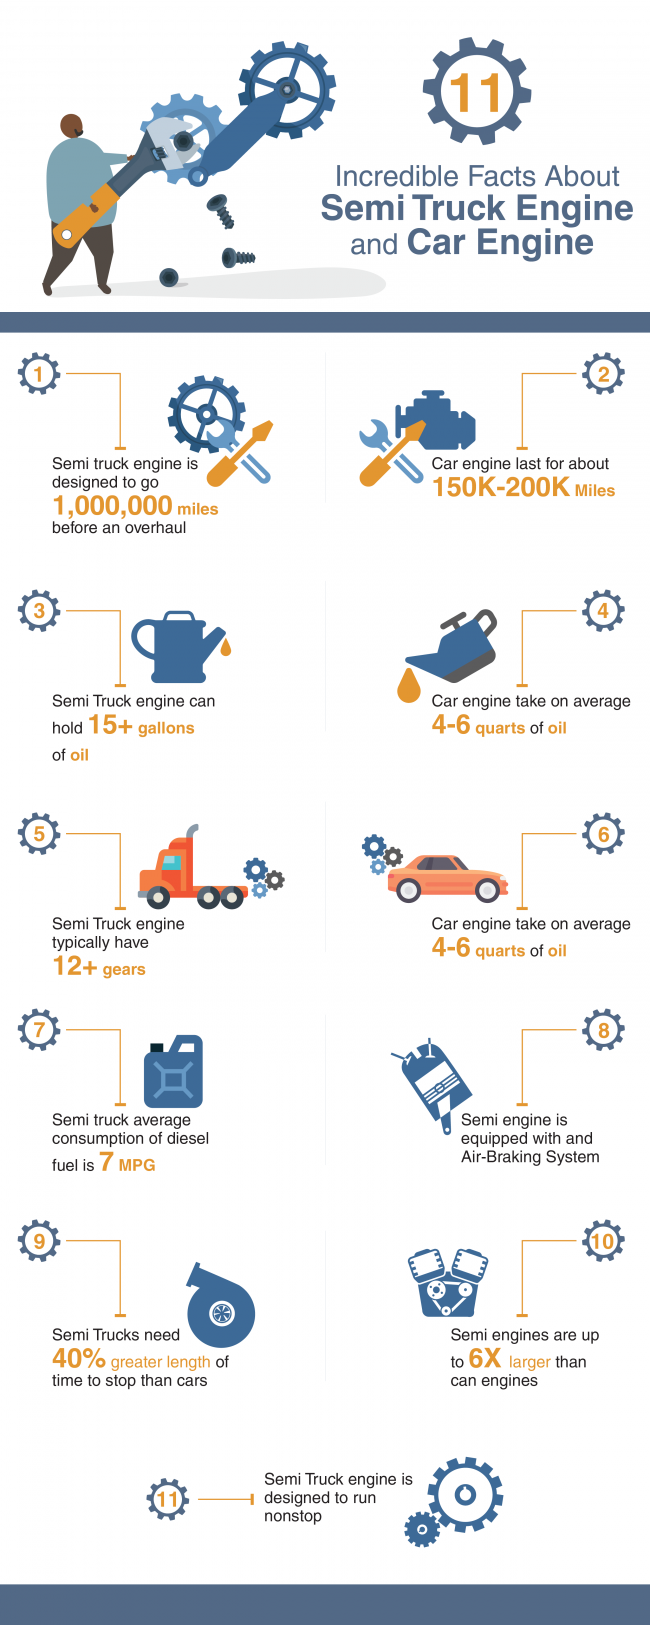 11 Incredible Facts About Semi Truck Engine and Car Engine